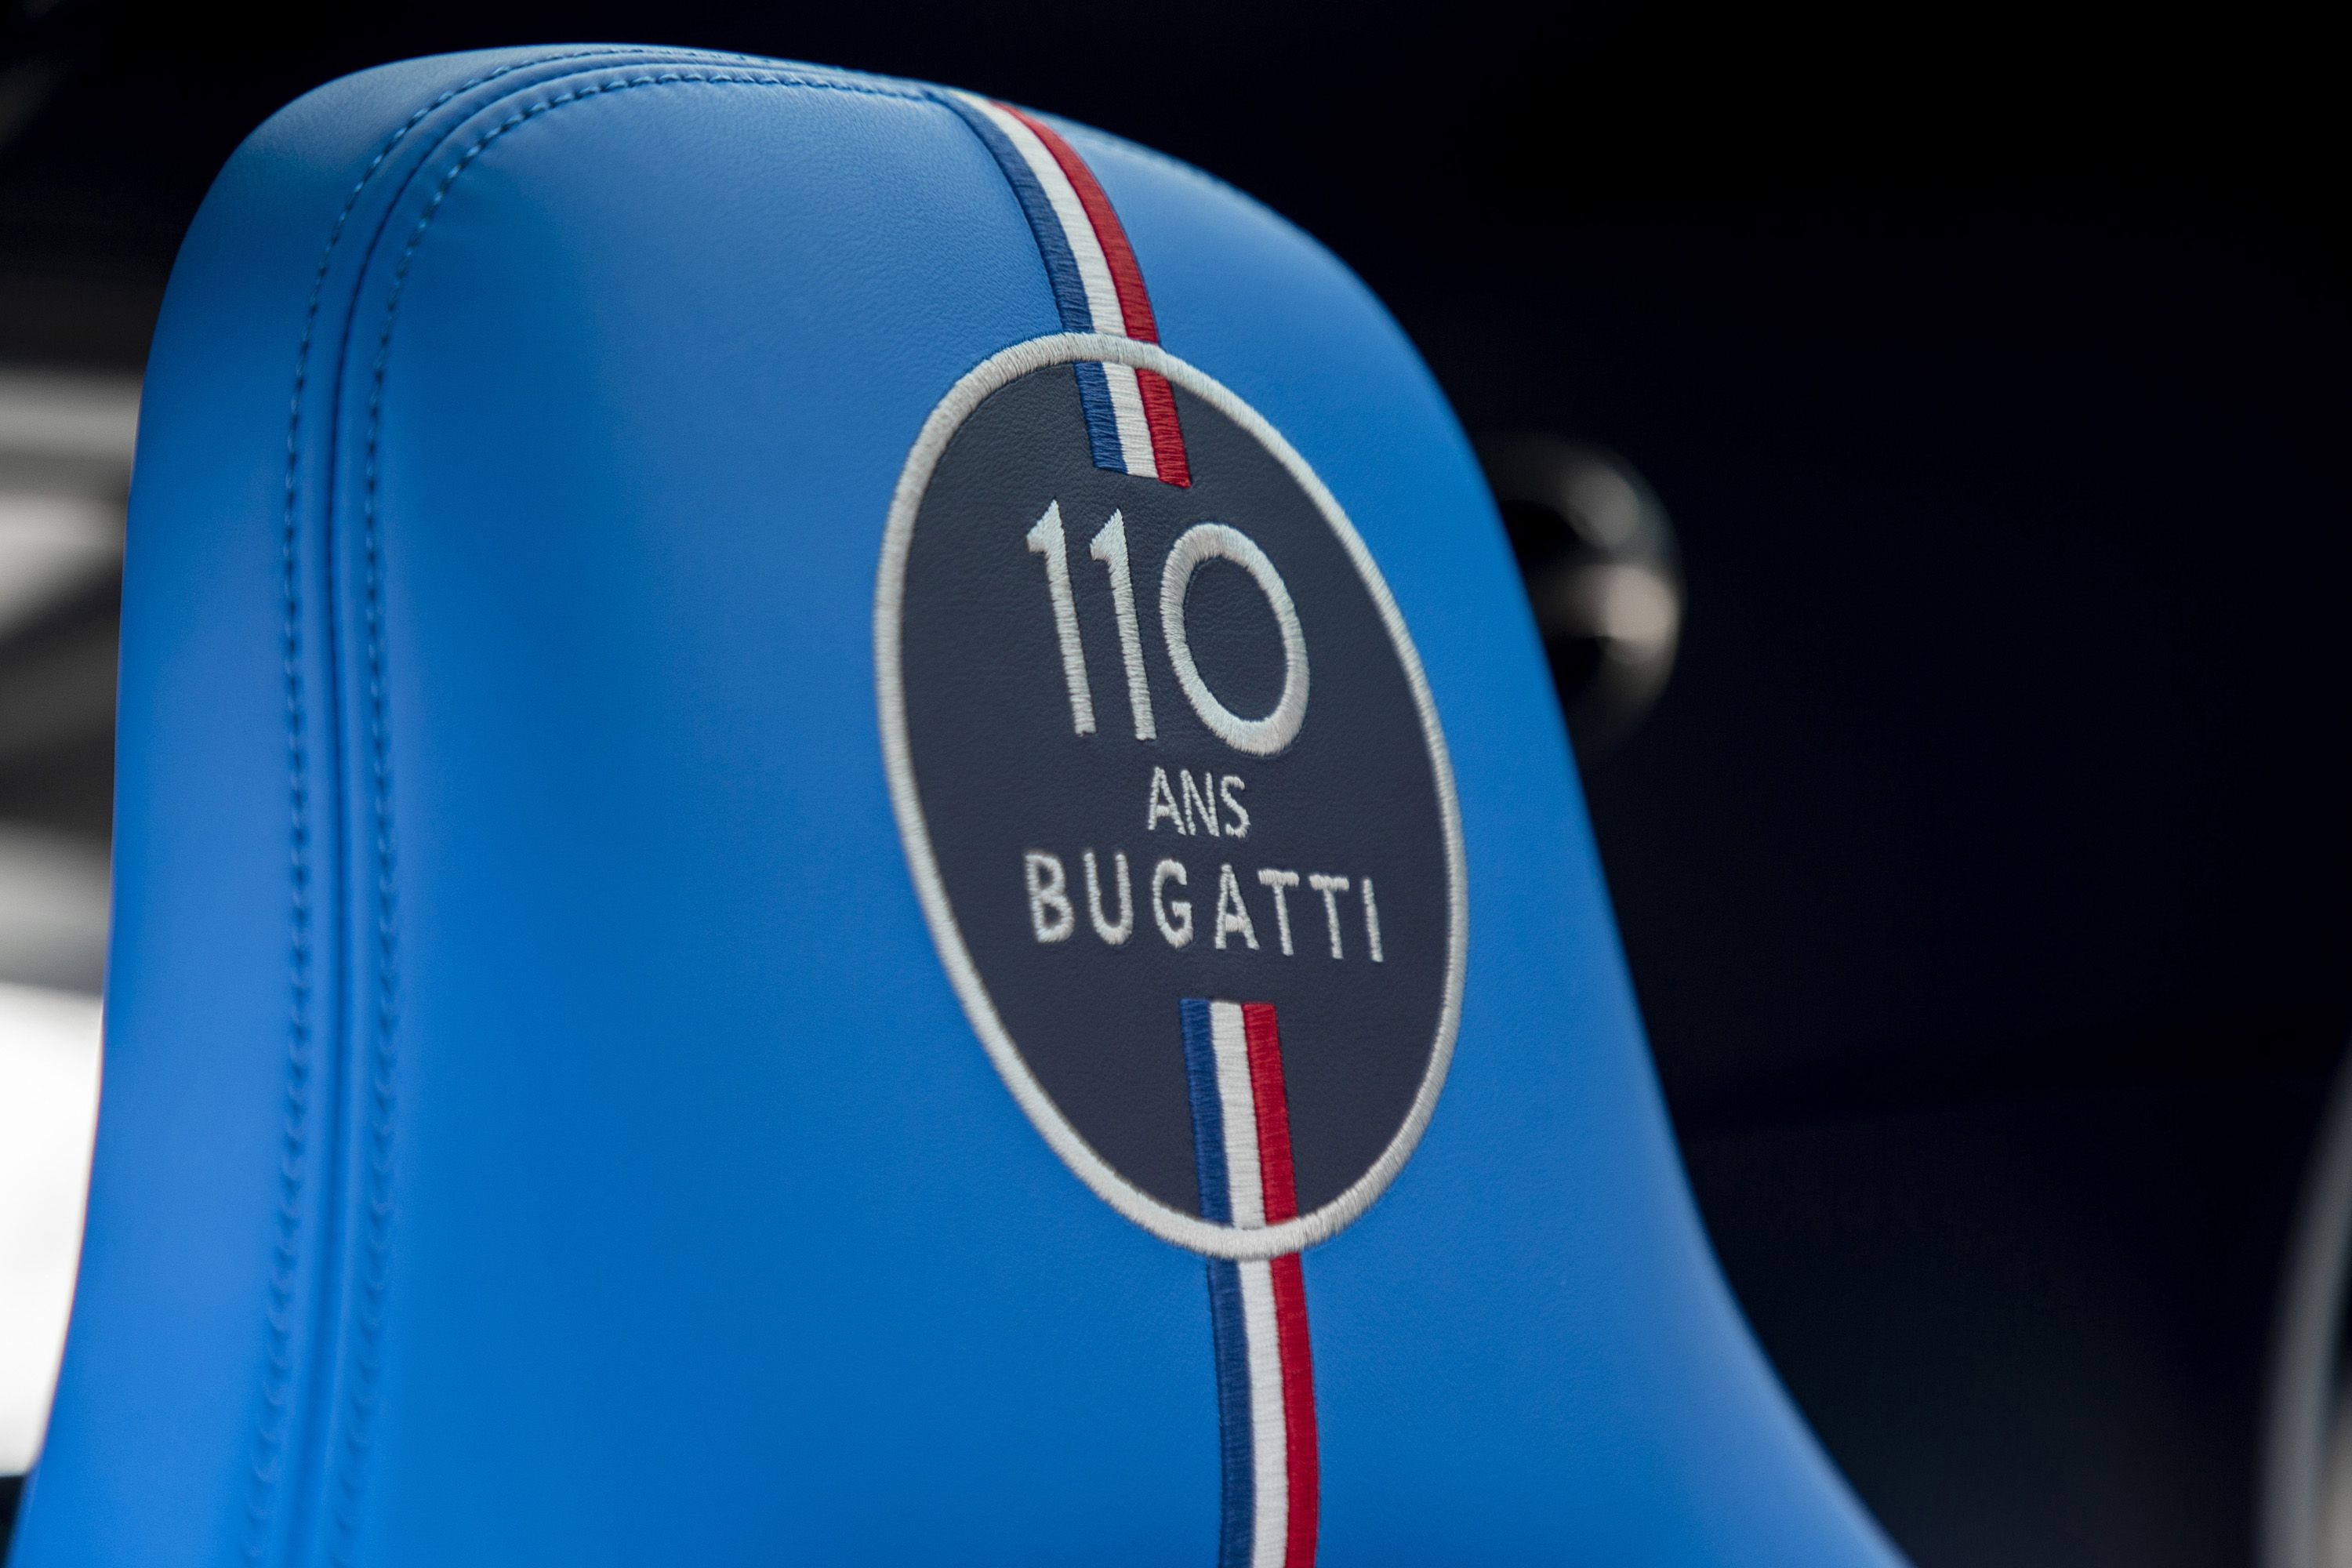 2019 Bugatti Chiron Sport 110 ans Bugatti Interior Detail Wallpapers (12)